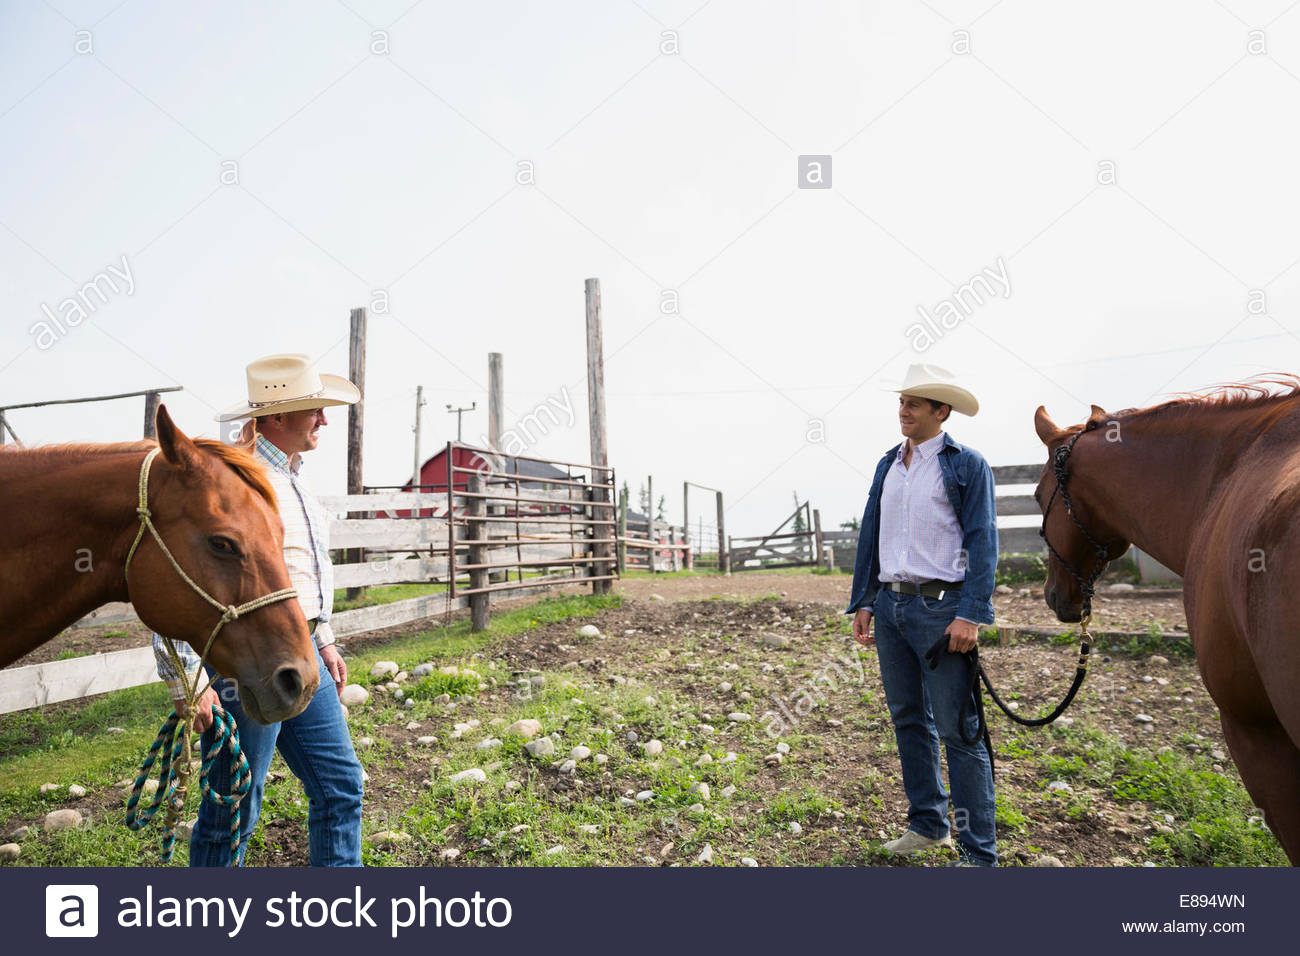 Ranchers with horses talking in pasture - Stock Image